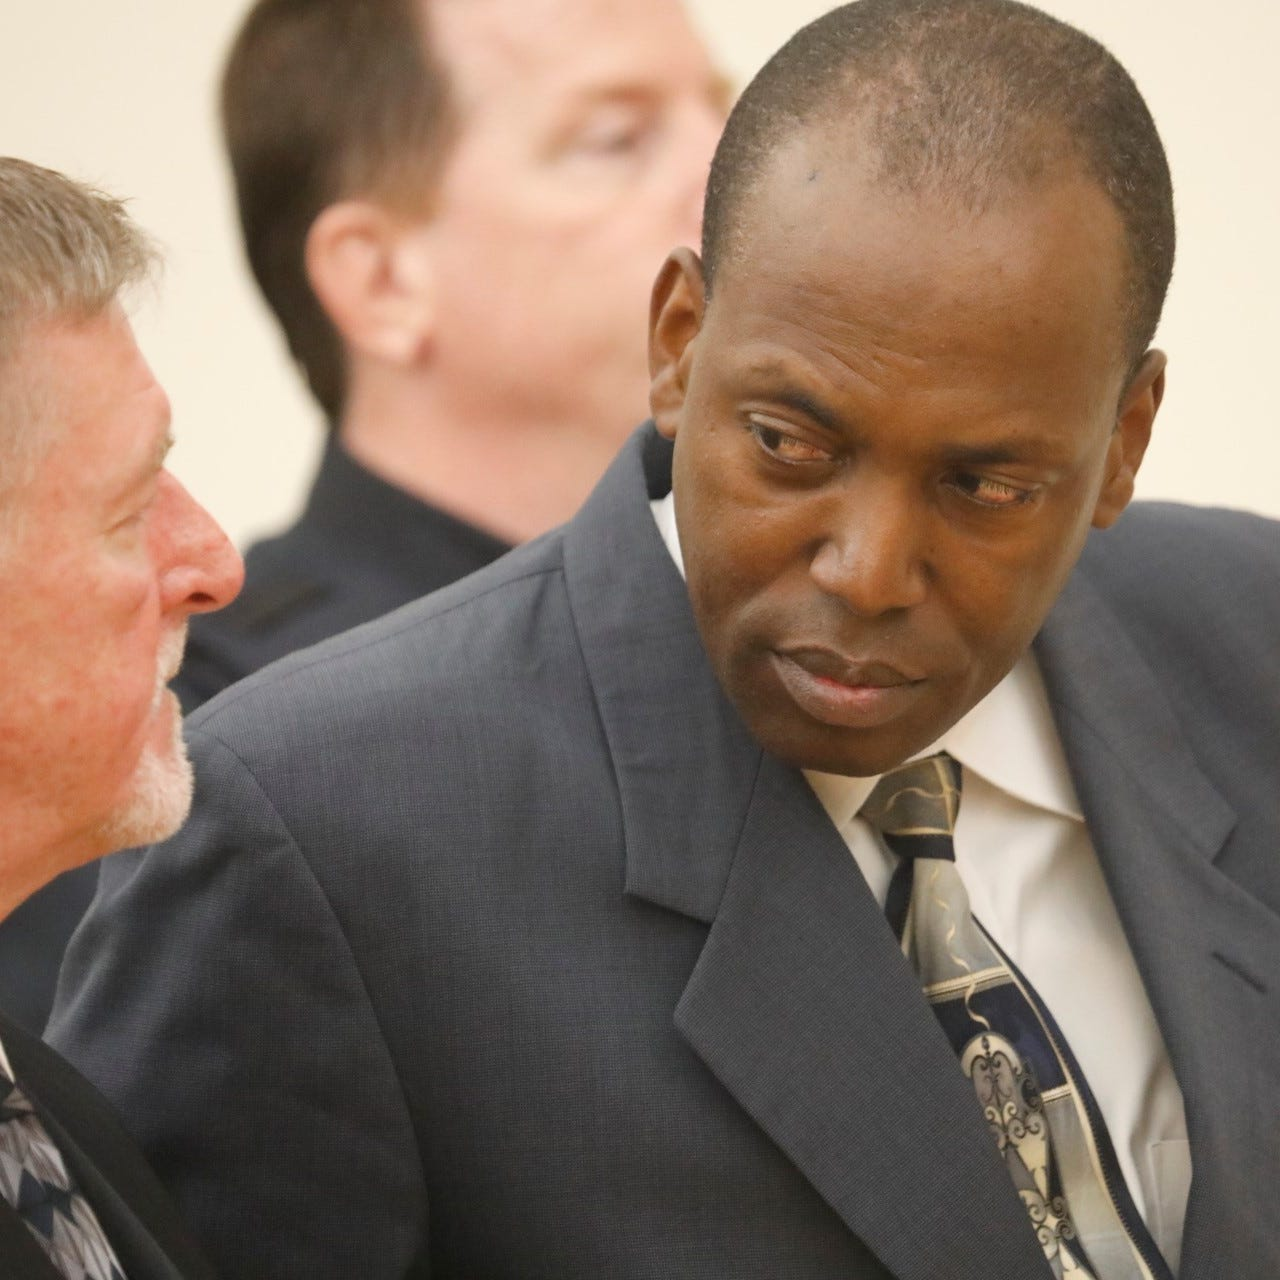 Ex-Trustee Vilair Fonvil sentenced to 1 year for $11K theft from Spring Valley camp